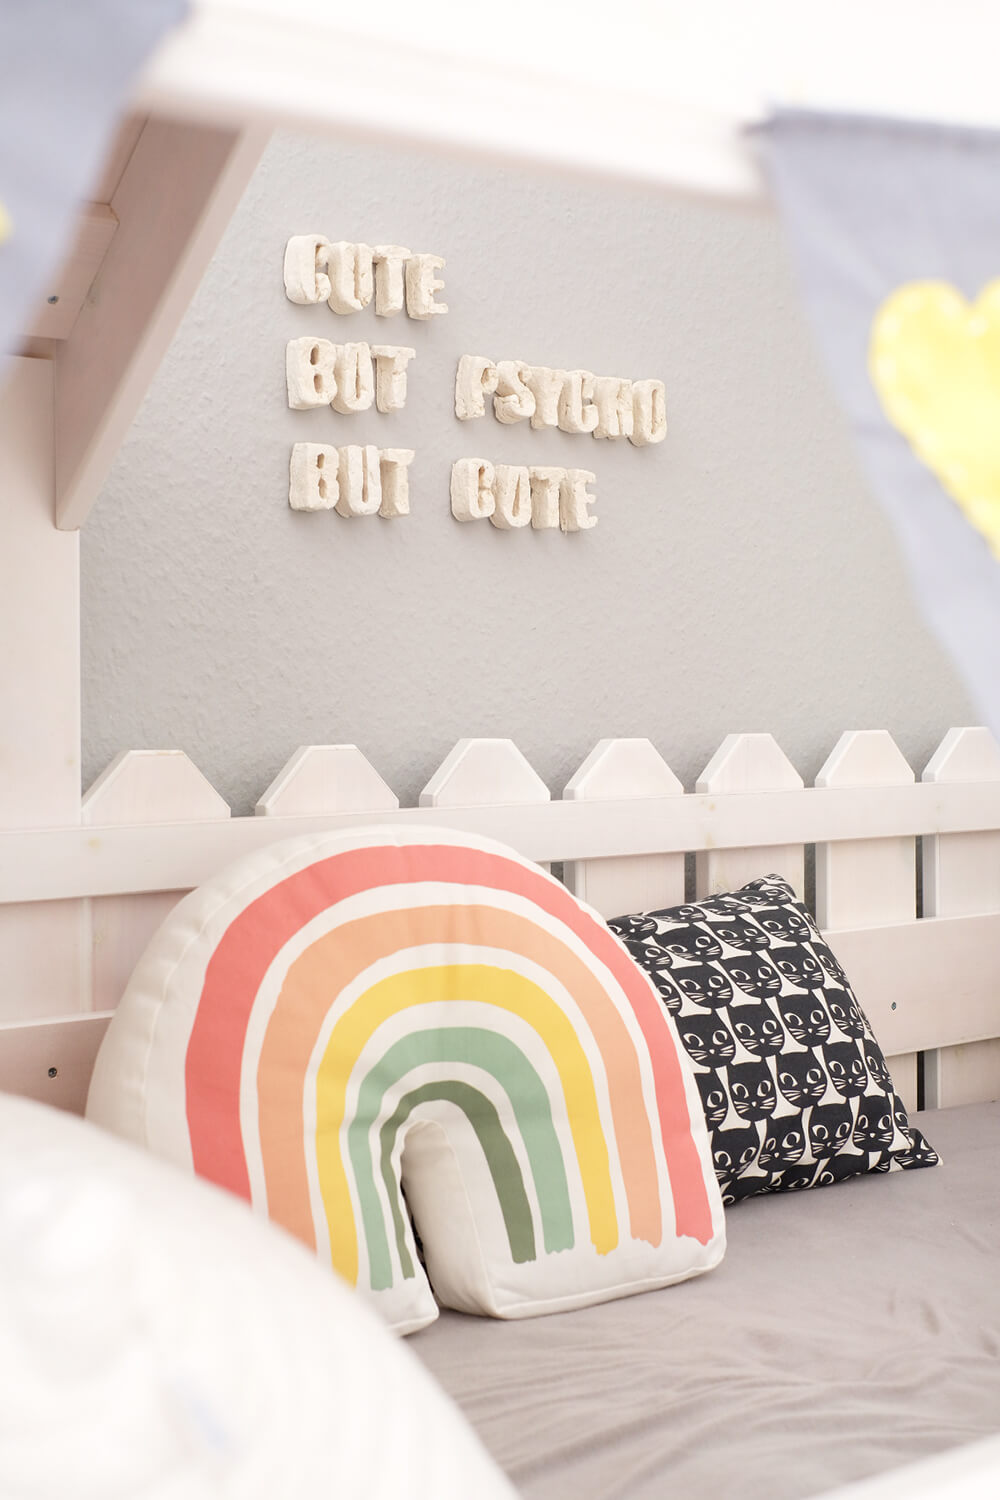 DIY Challenge - Ppapmaché an der Wand als Deko im Kinderzimmer - GIngered Things